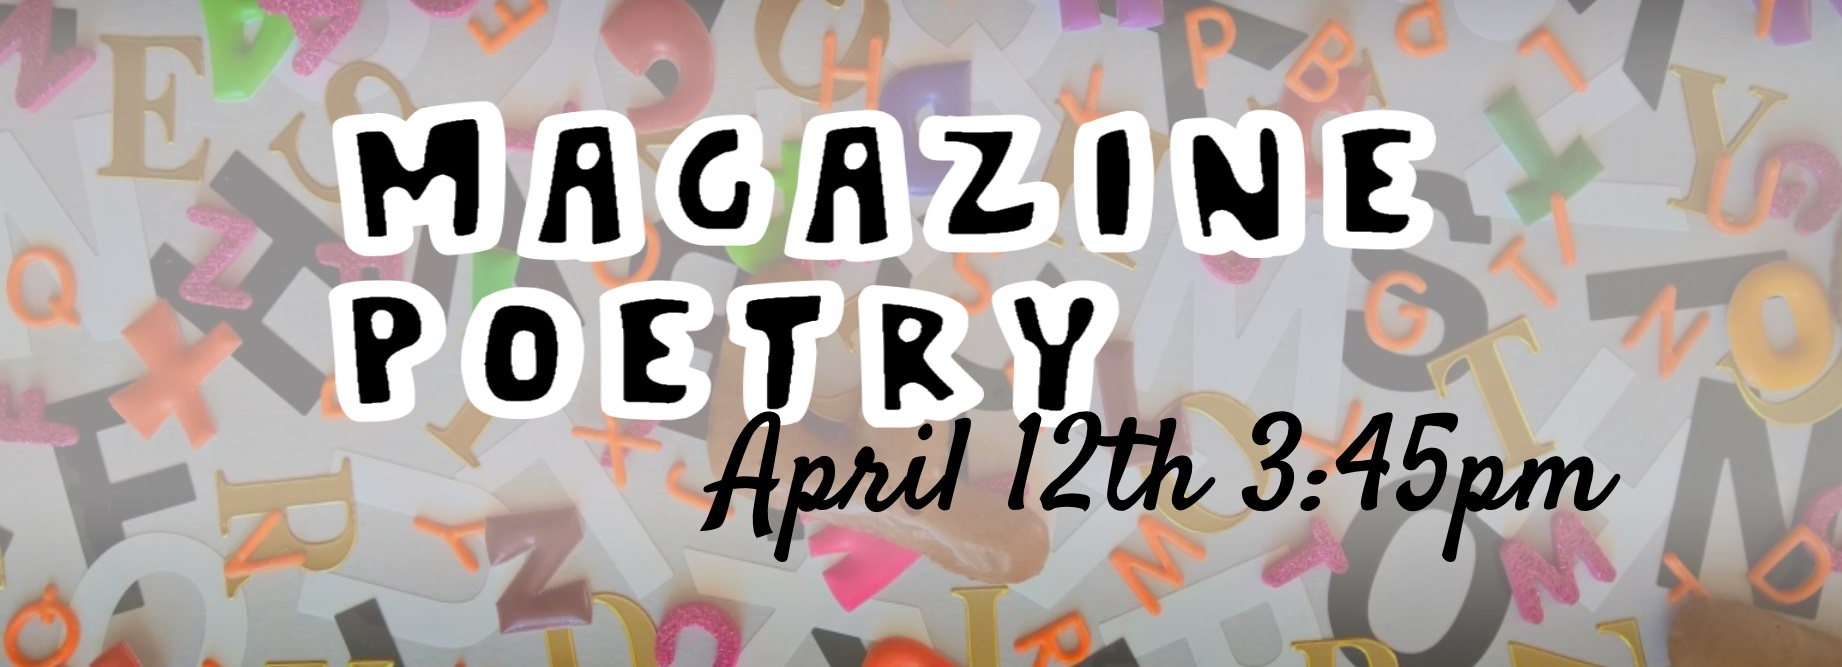 Magazine Poetry April 12th 3:45 pm